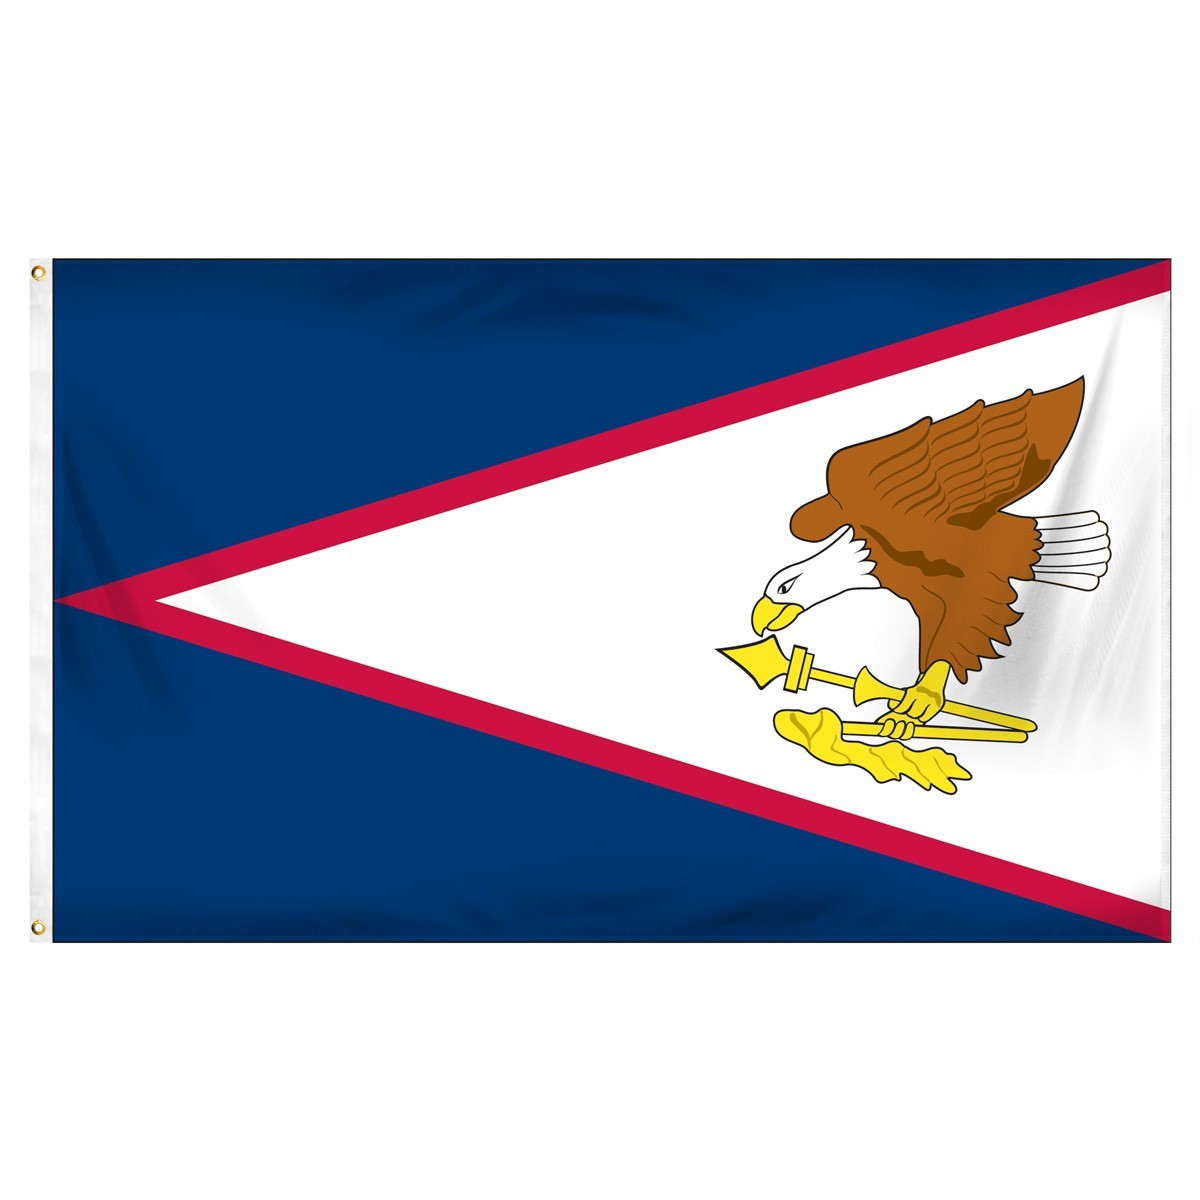 American Samoa 3' x 5' Indoor Polyester Flag